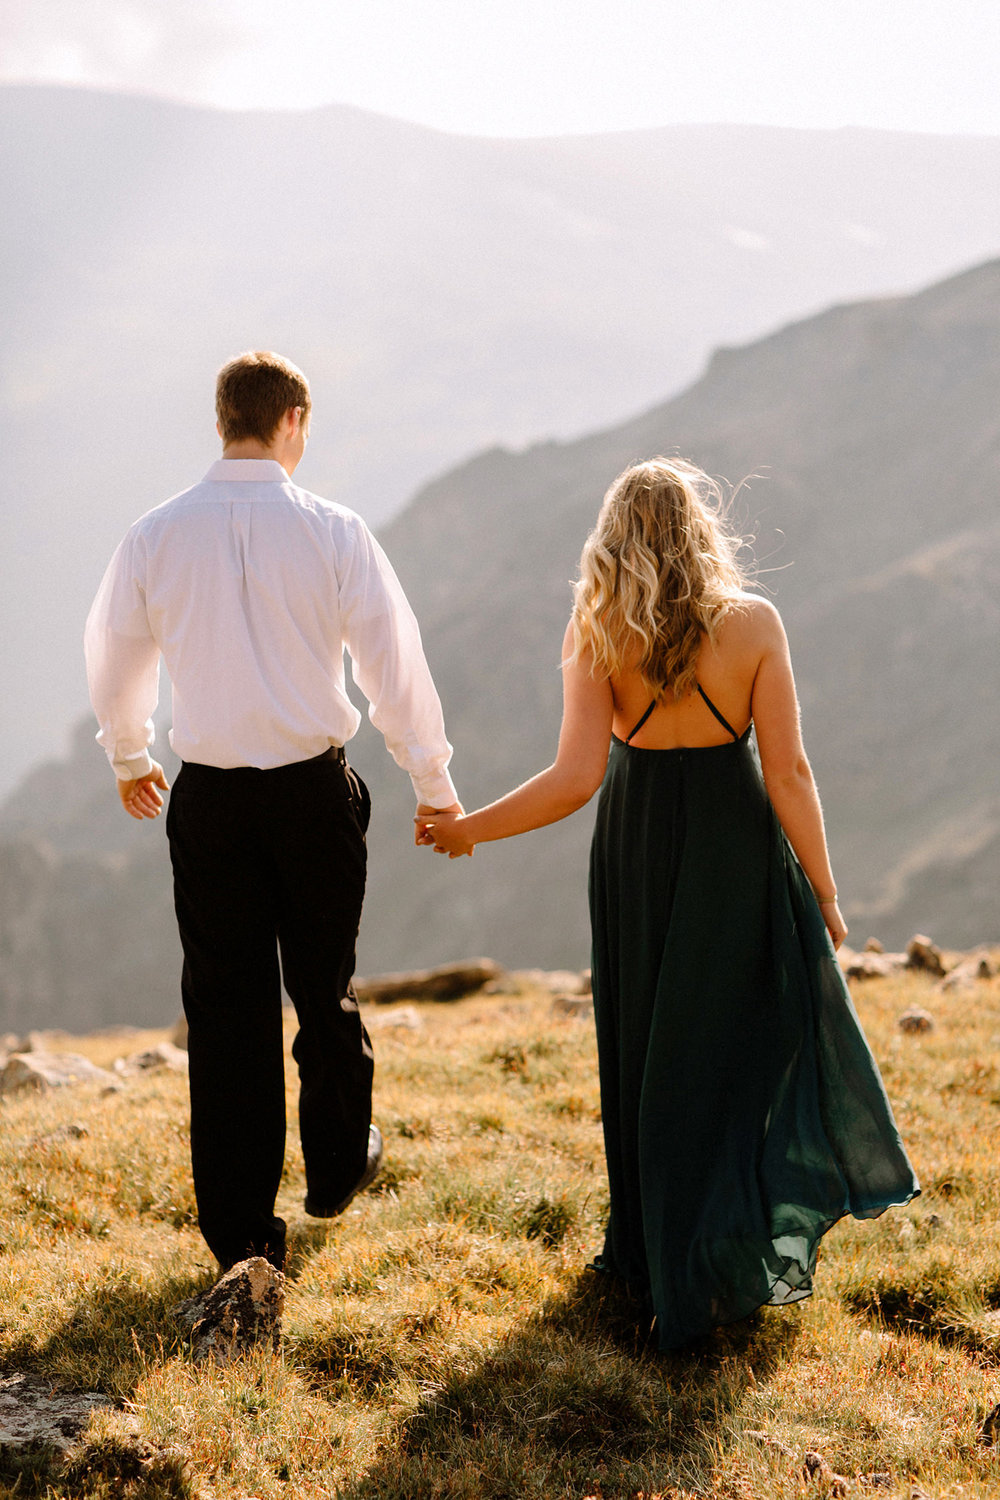 Rocky Mountain Engagement National Park Engaged Photos Wedding Elopement Portrait Mountains Trail Ridge Rd Peak Alpine Dress Lulus Rules Permit Photo Adventure Love Couples Destination Liz Osban photography Cheyenne Wyoming5.jpg